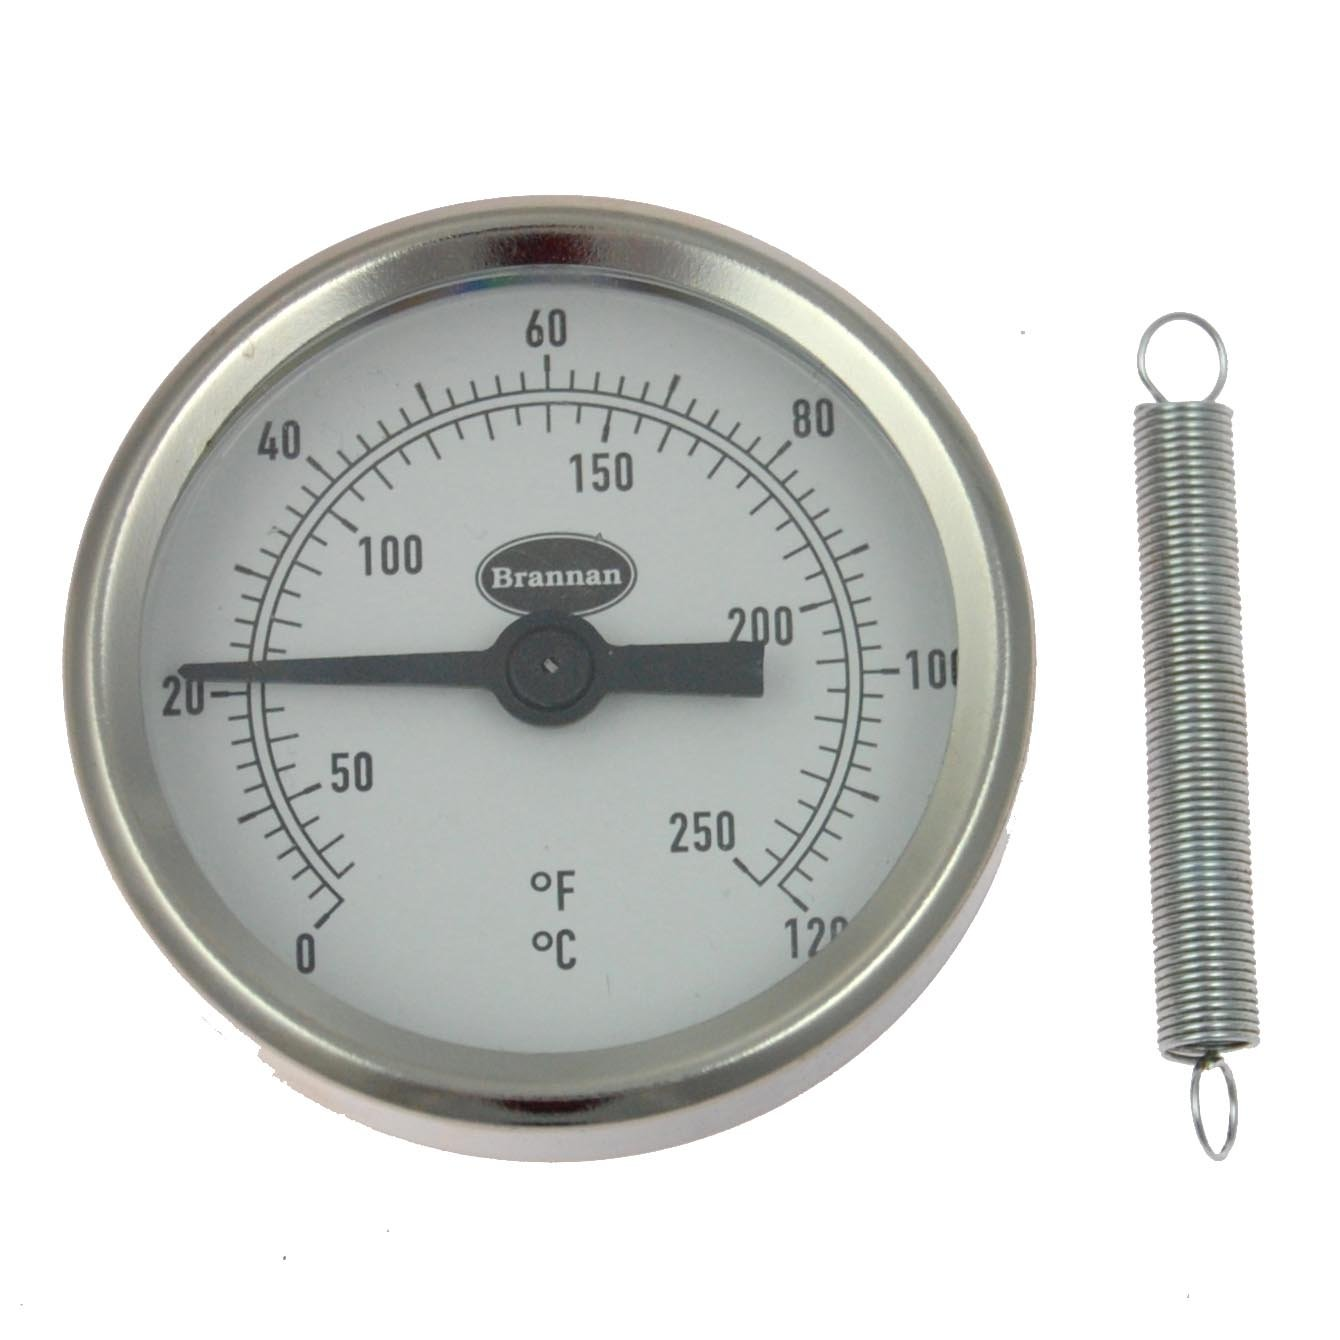 Clip-on pipe thermometer / hot water pipe thermometer Brannan